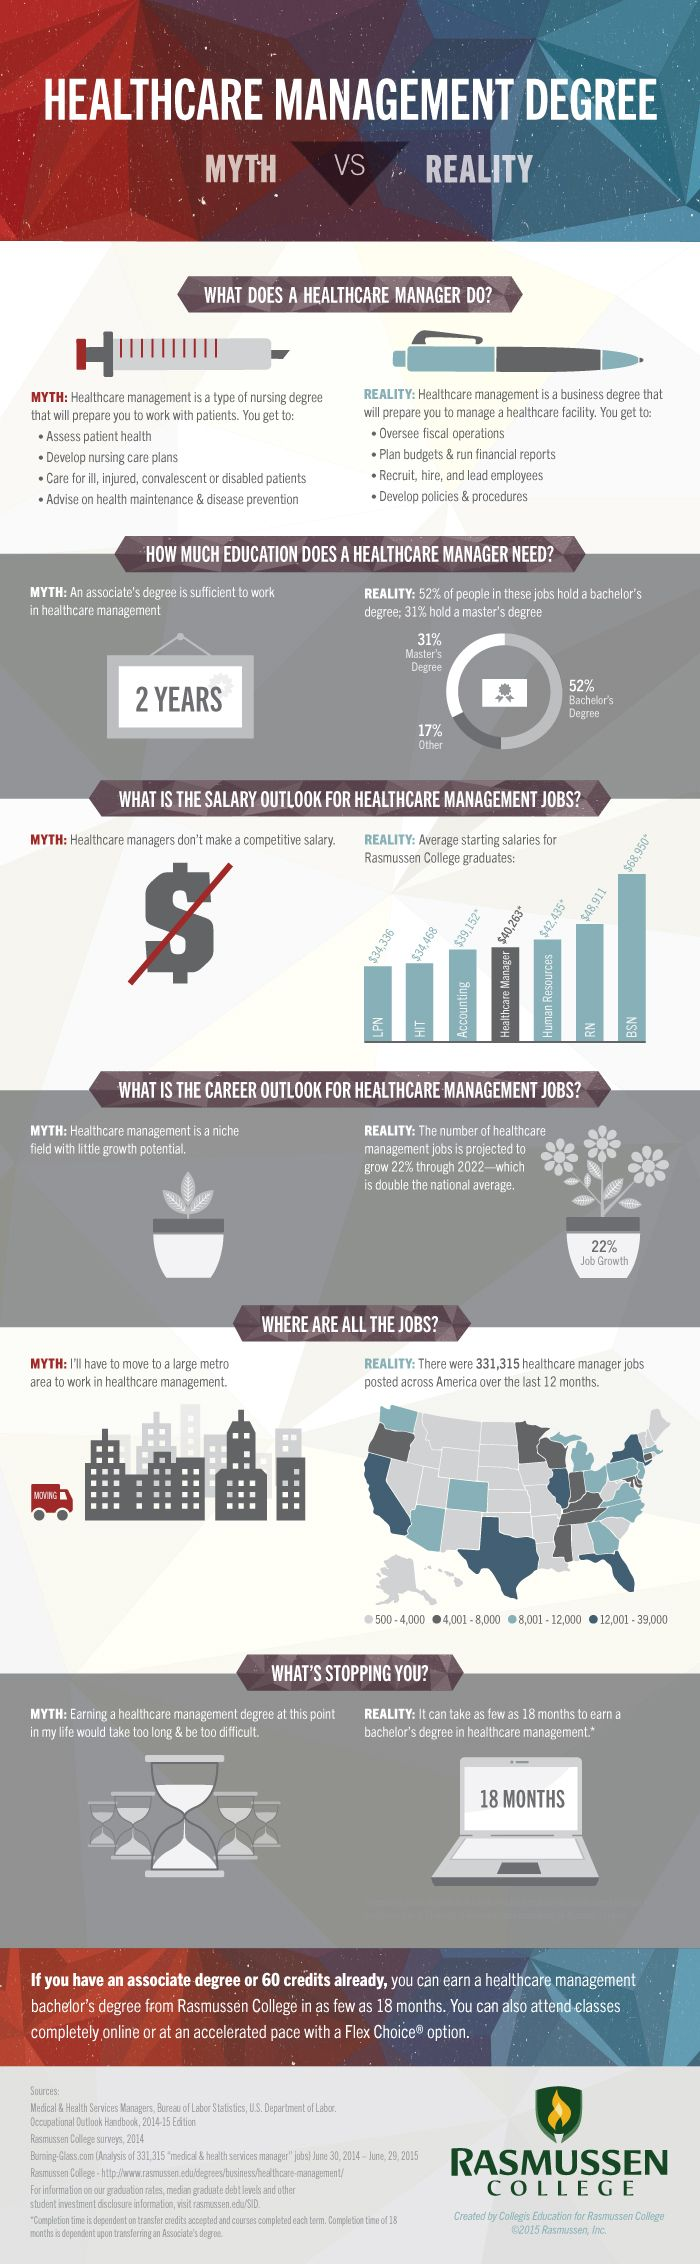 Healthcare Management Degree Infographic